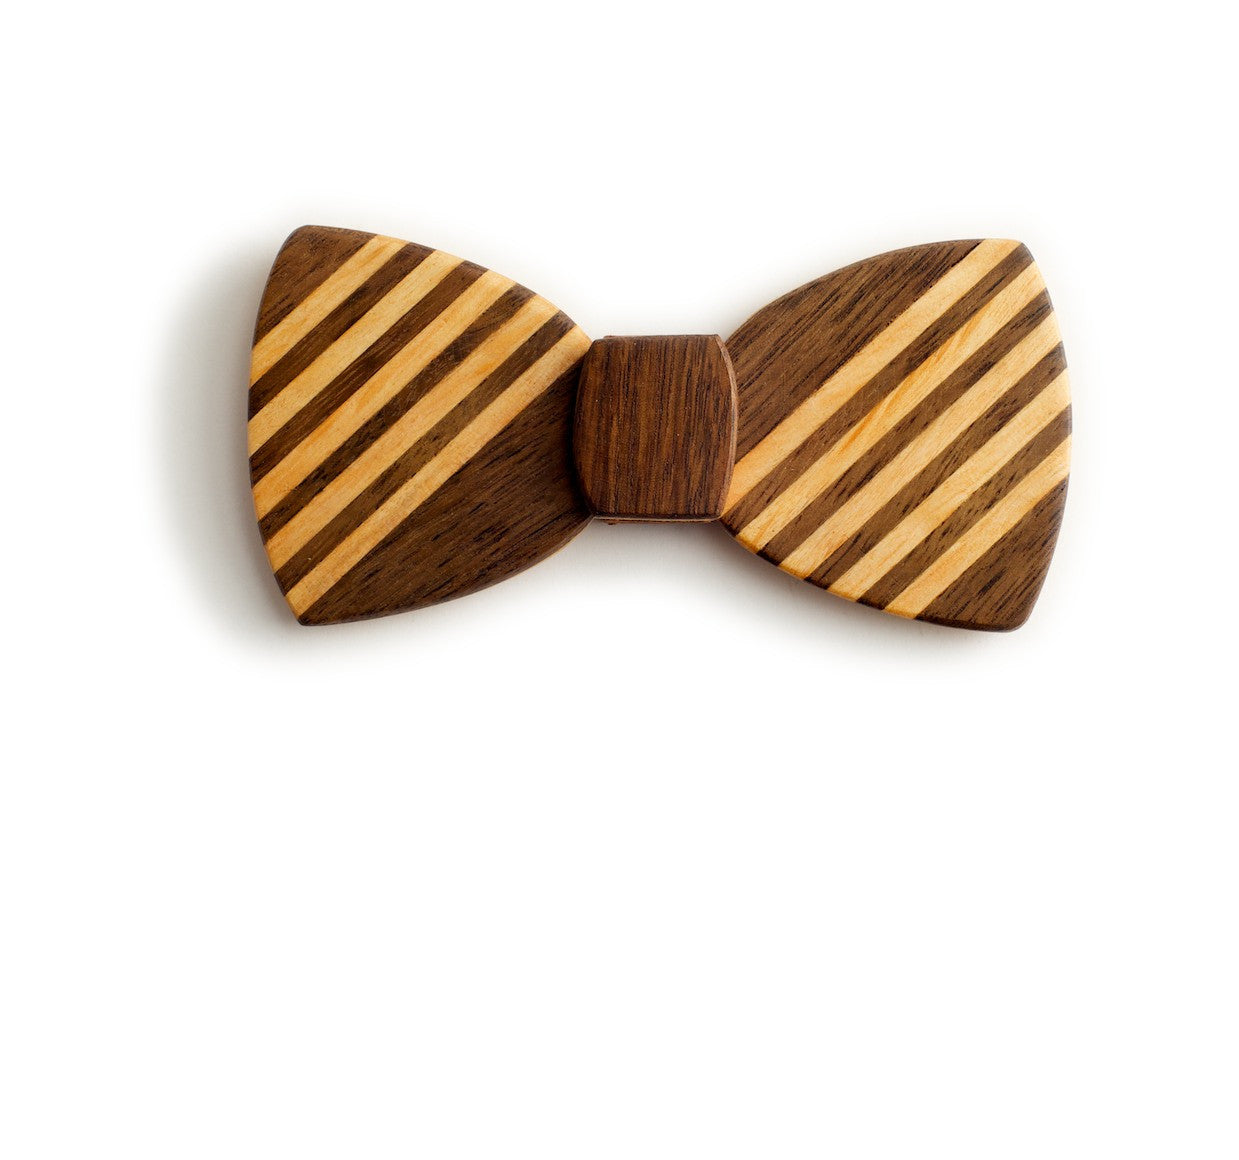 Butterfly Wood Bow Tie - Schoolboy dark